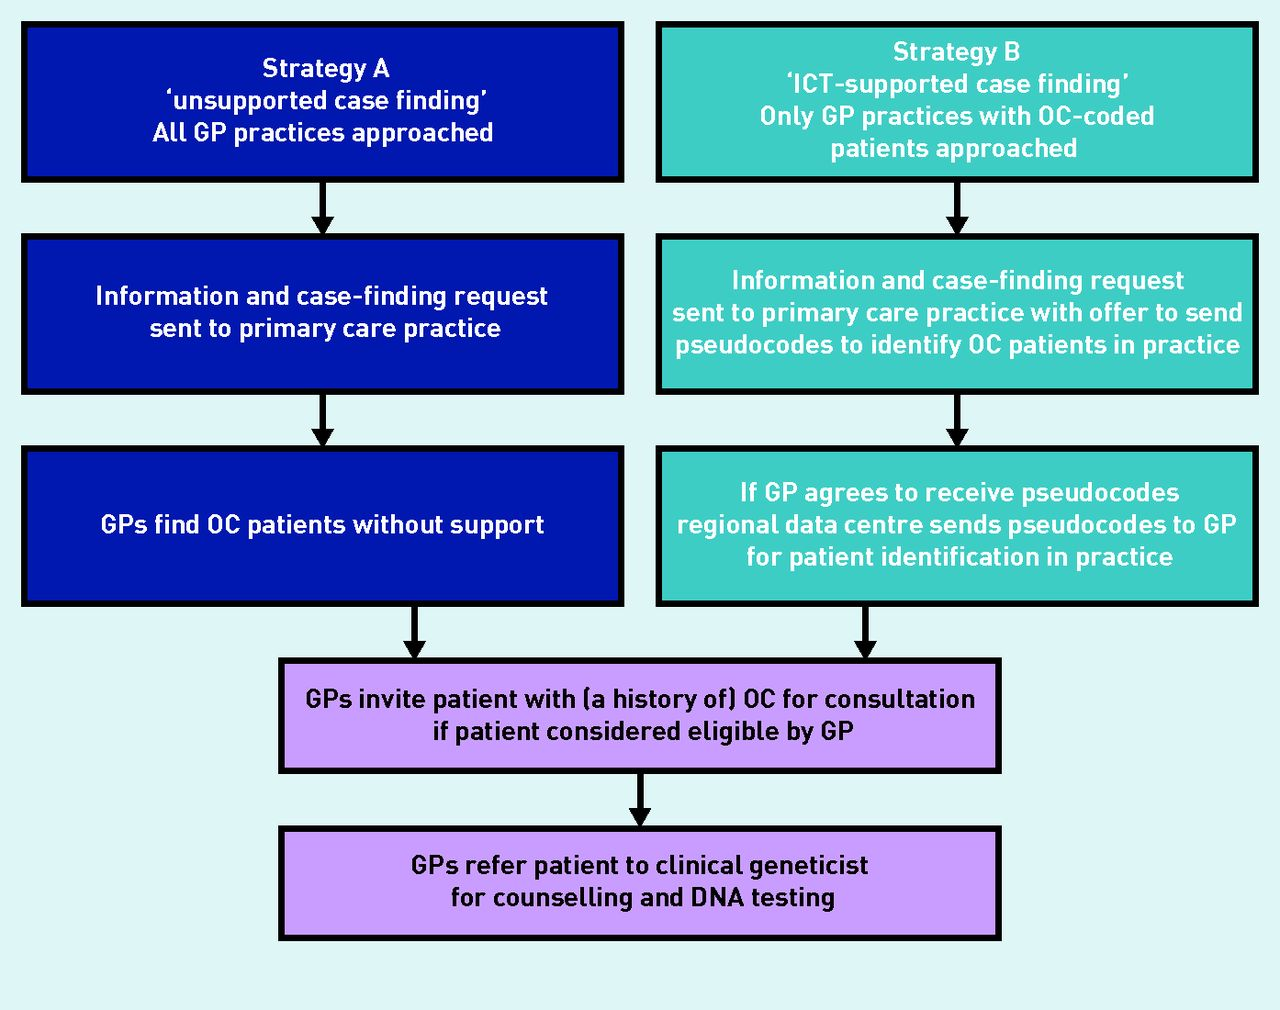 Identifying Patients With A History Of Ovarian Cancer For Referral For Genetic Counselling Non Randomised Comparison Of Two Case Finding Strategies In Primary Care British Journal Of General Practice